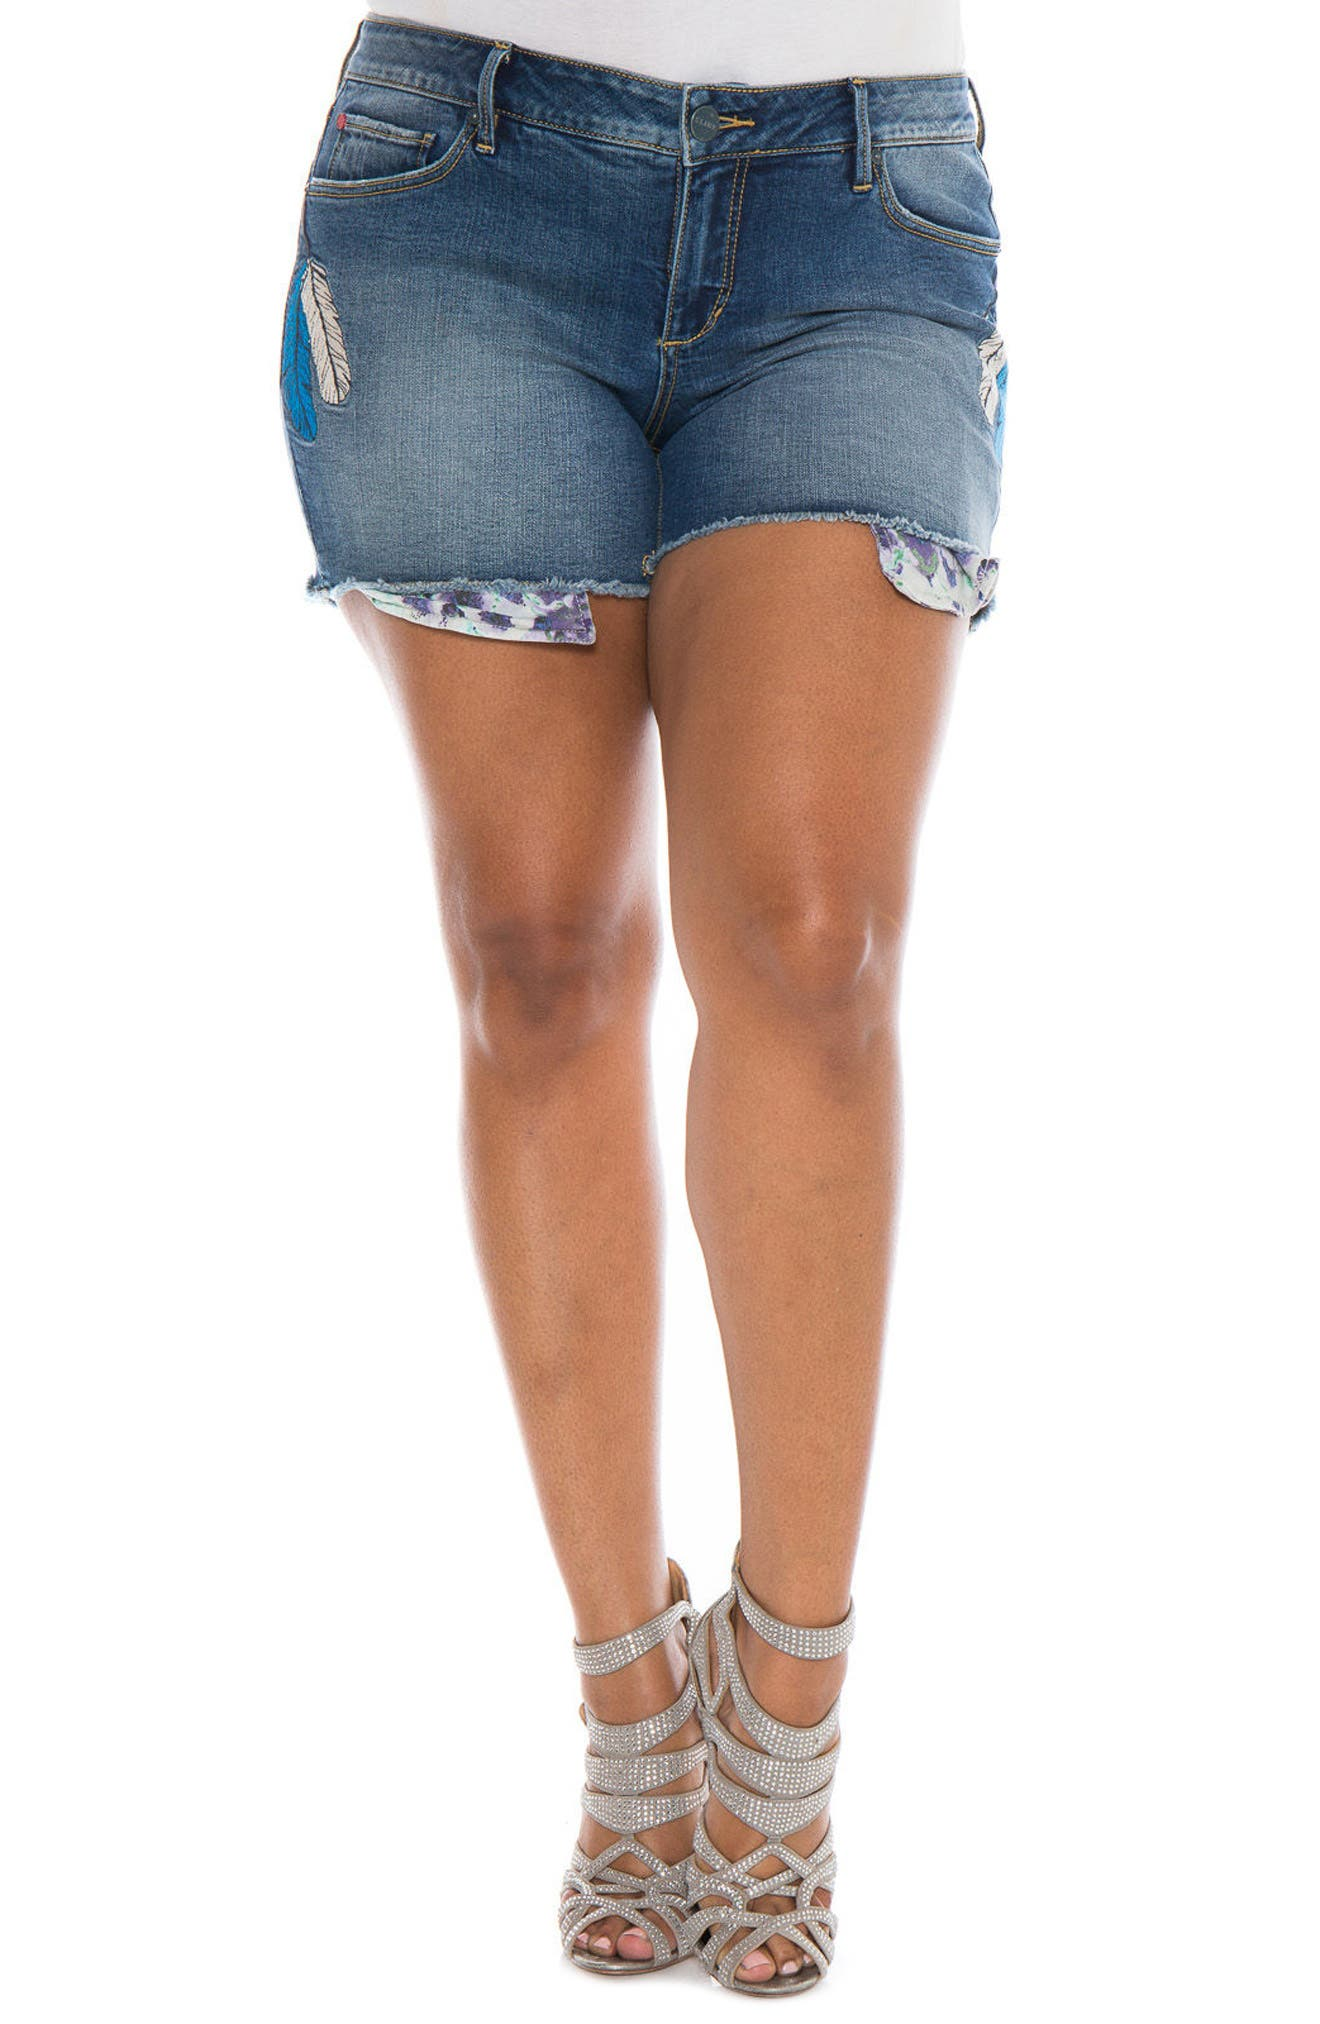 Alternate Image 1 Selected - SLINK Jeans Embroidered Cutoff Denim Shorts (Plus Size)